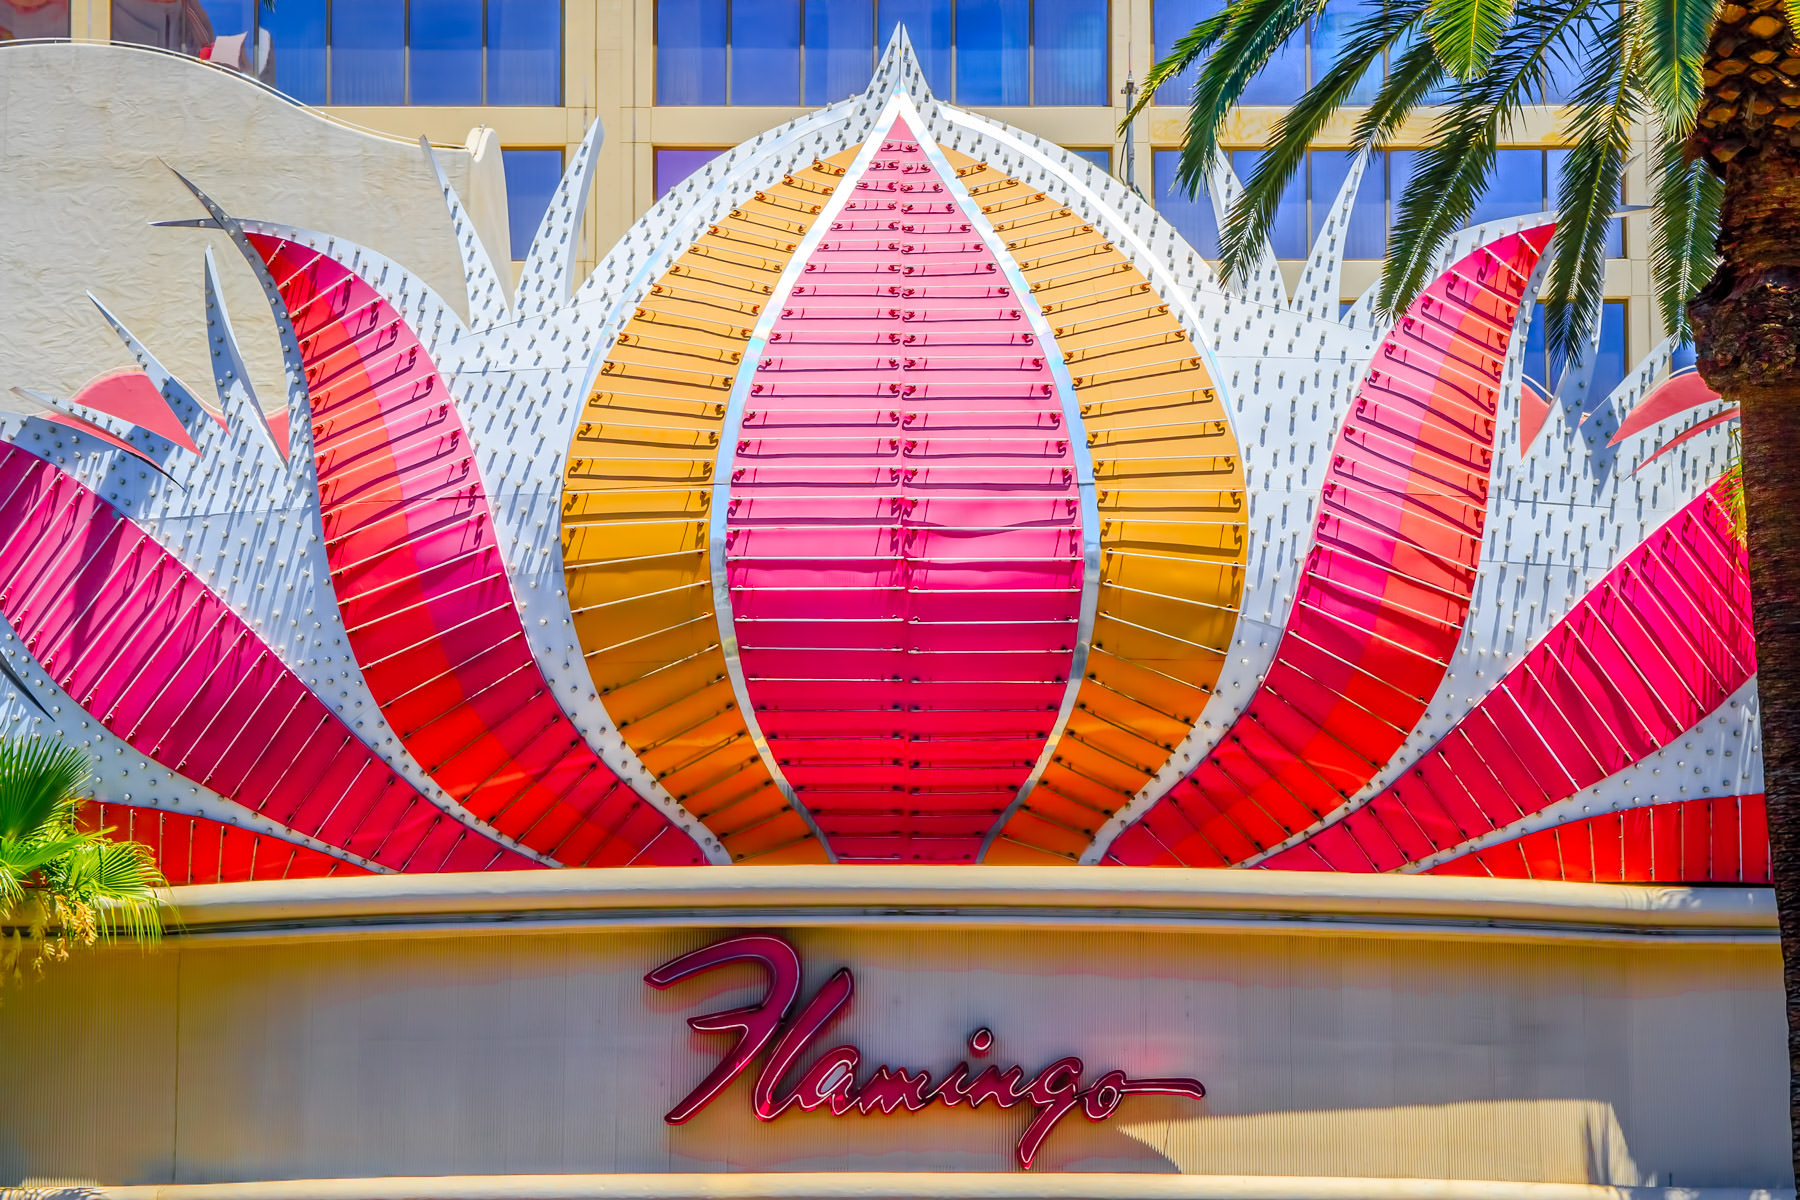 Exterior sign detail of The Flamingo Hotel & Casino, Las Vegas.